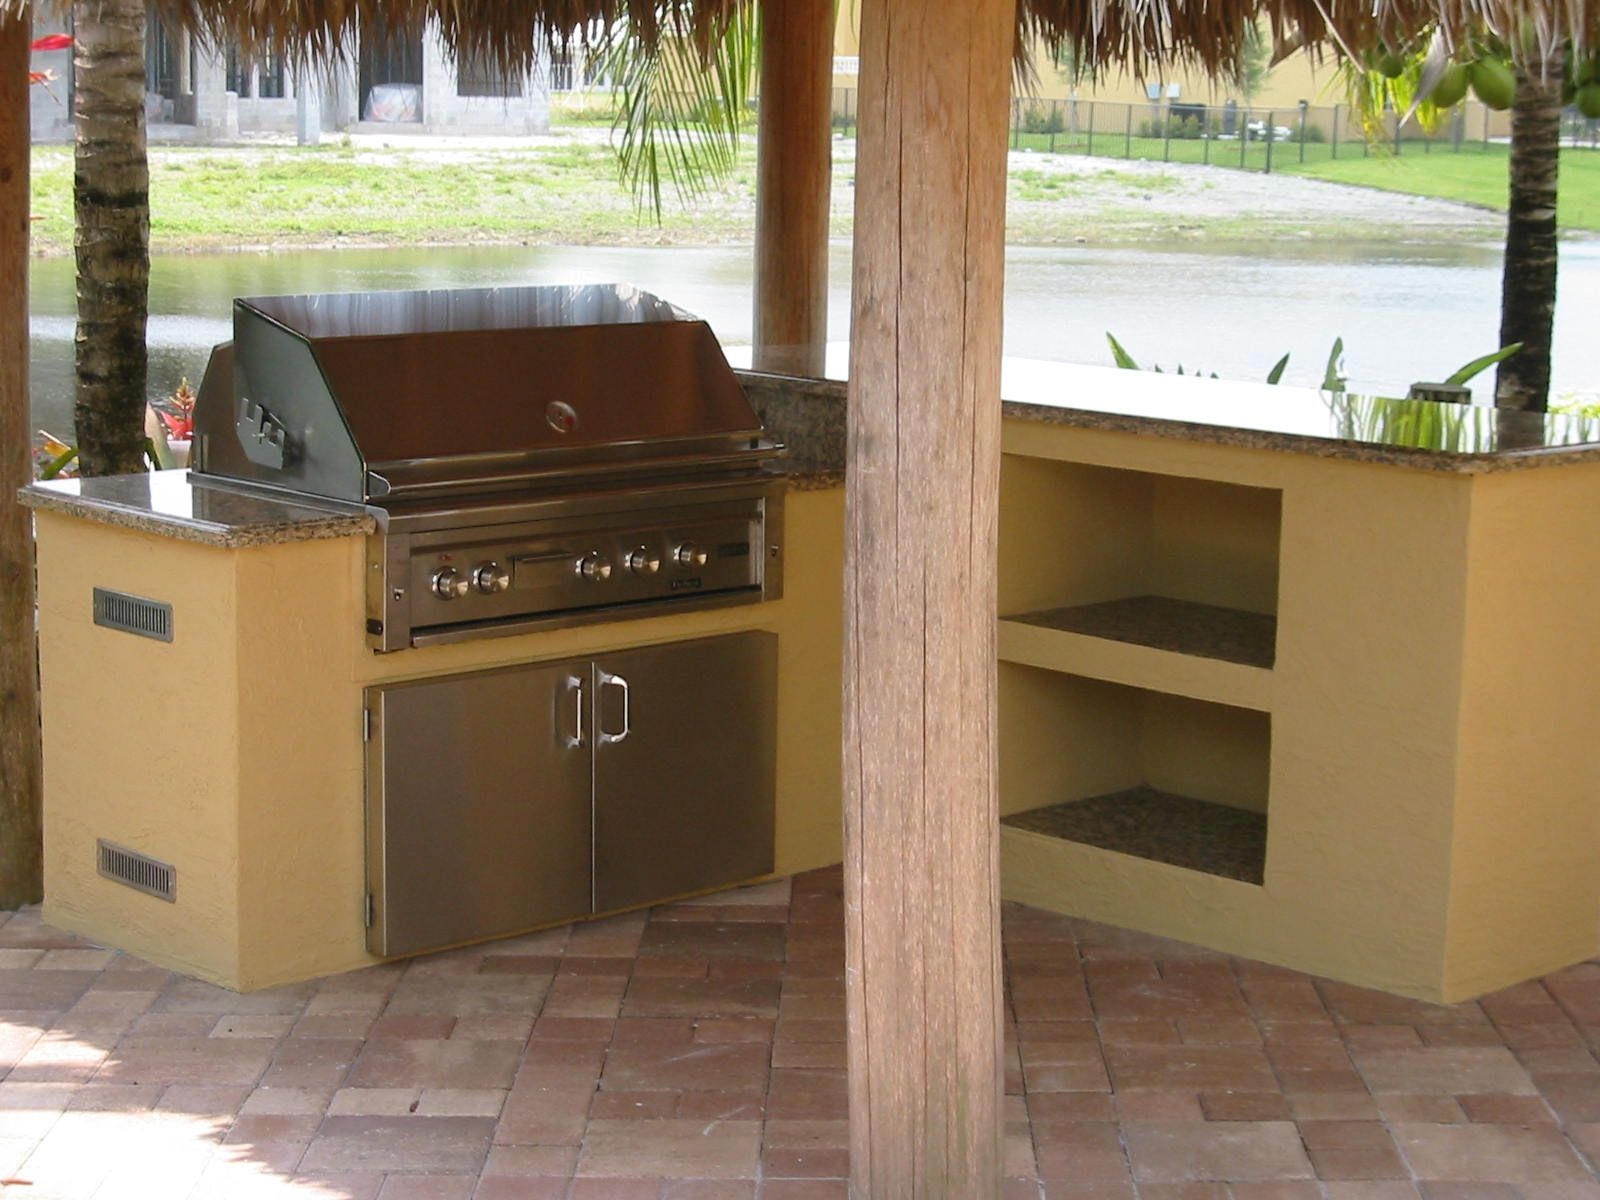 Backyard barbecue ideas lynx built in bbq grill in for Backyard built in bbq ideas